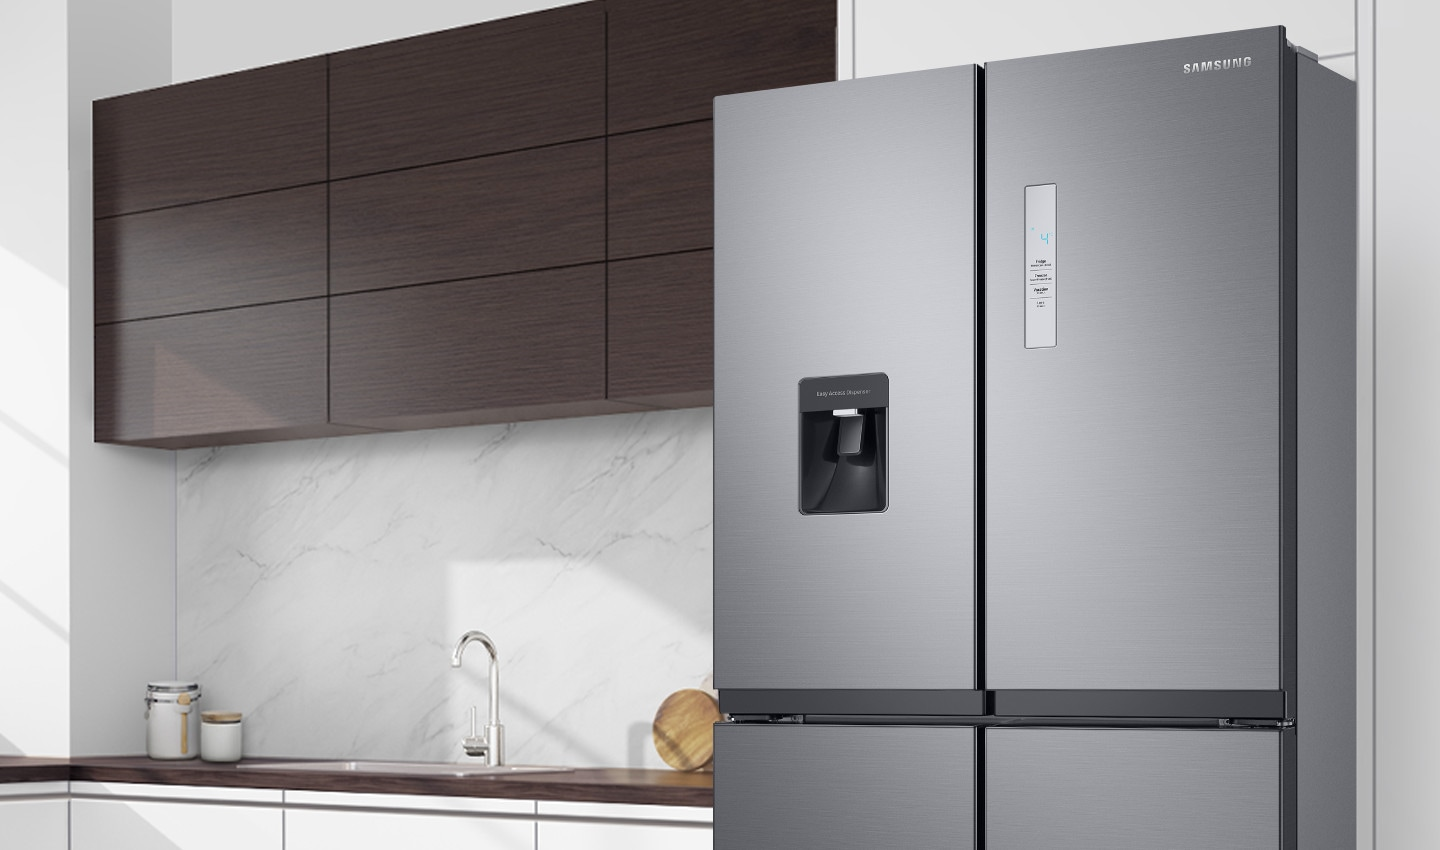 The RF4000TM is installed in the kitchen with minimal handles and a stylish front LED display.